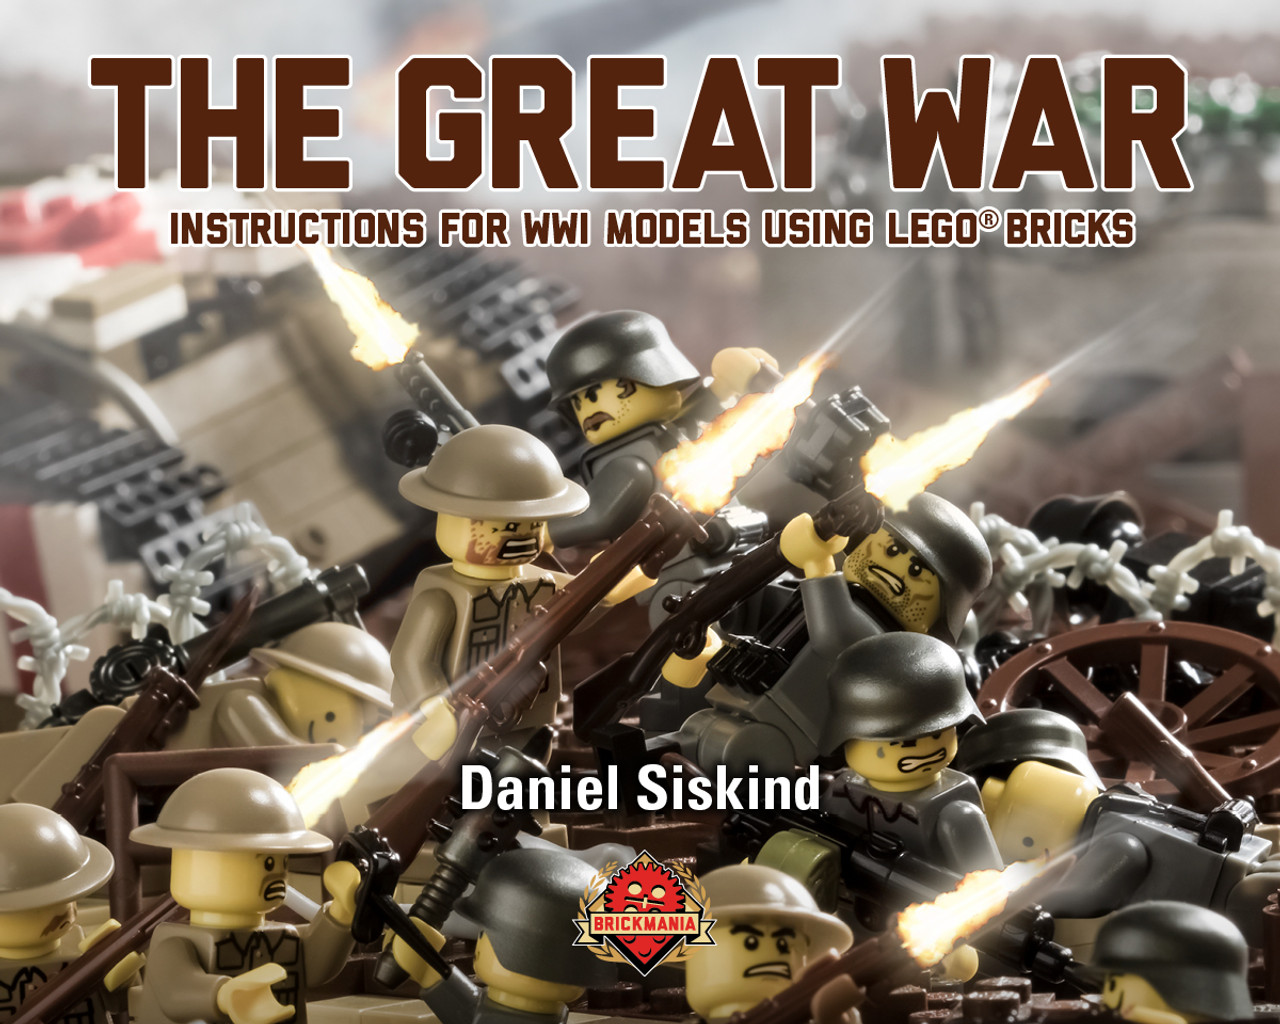 The Great War Instructions For Wwi Models Using Lego Bricks